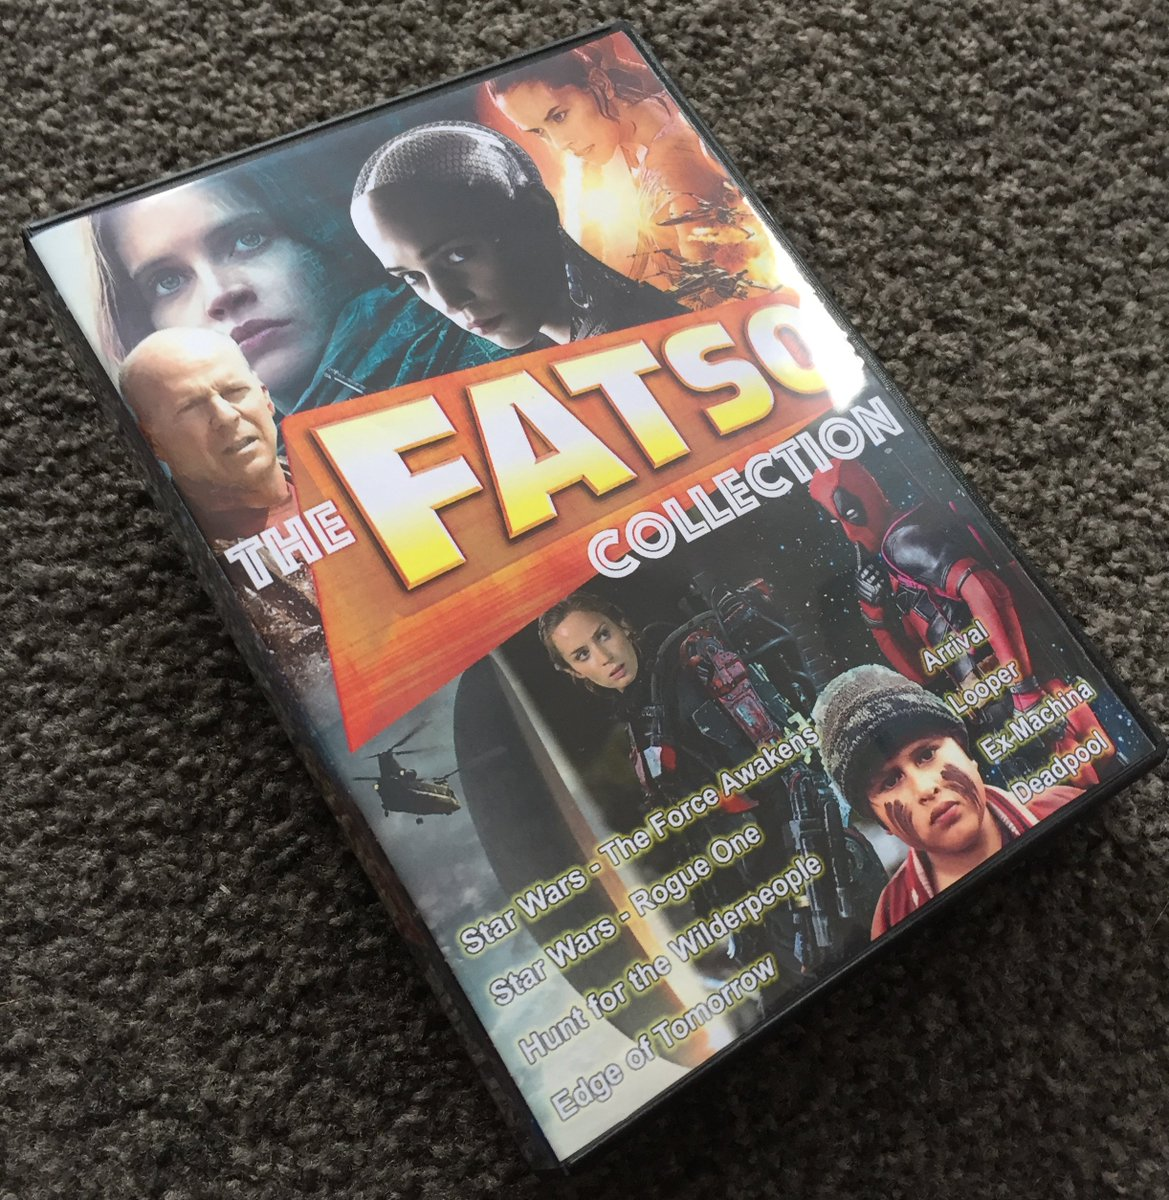 Case that holds 8 DVDs finally arrived, so my @fatsoDVD collection is all done. Still miss you guys! https://t.co/oZNHFnPzmo